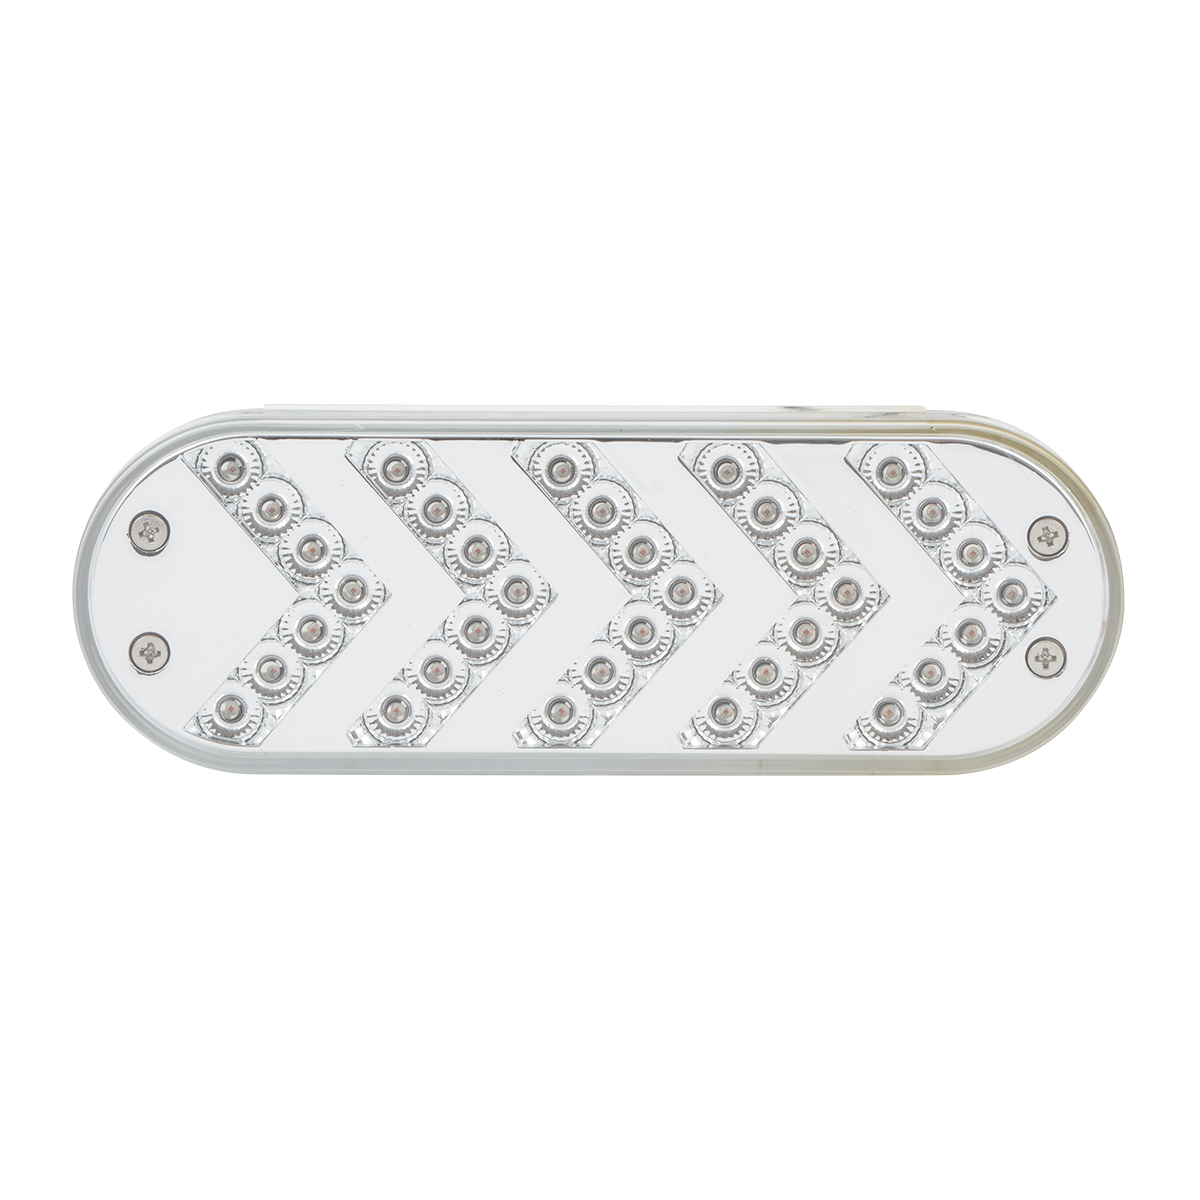 Oval Sequential Arrow Spyder LED Light in Clear Lens